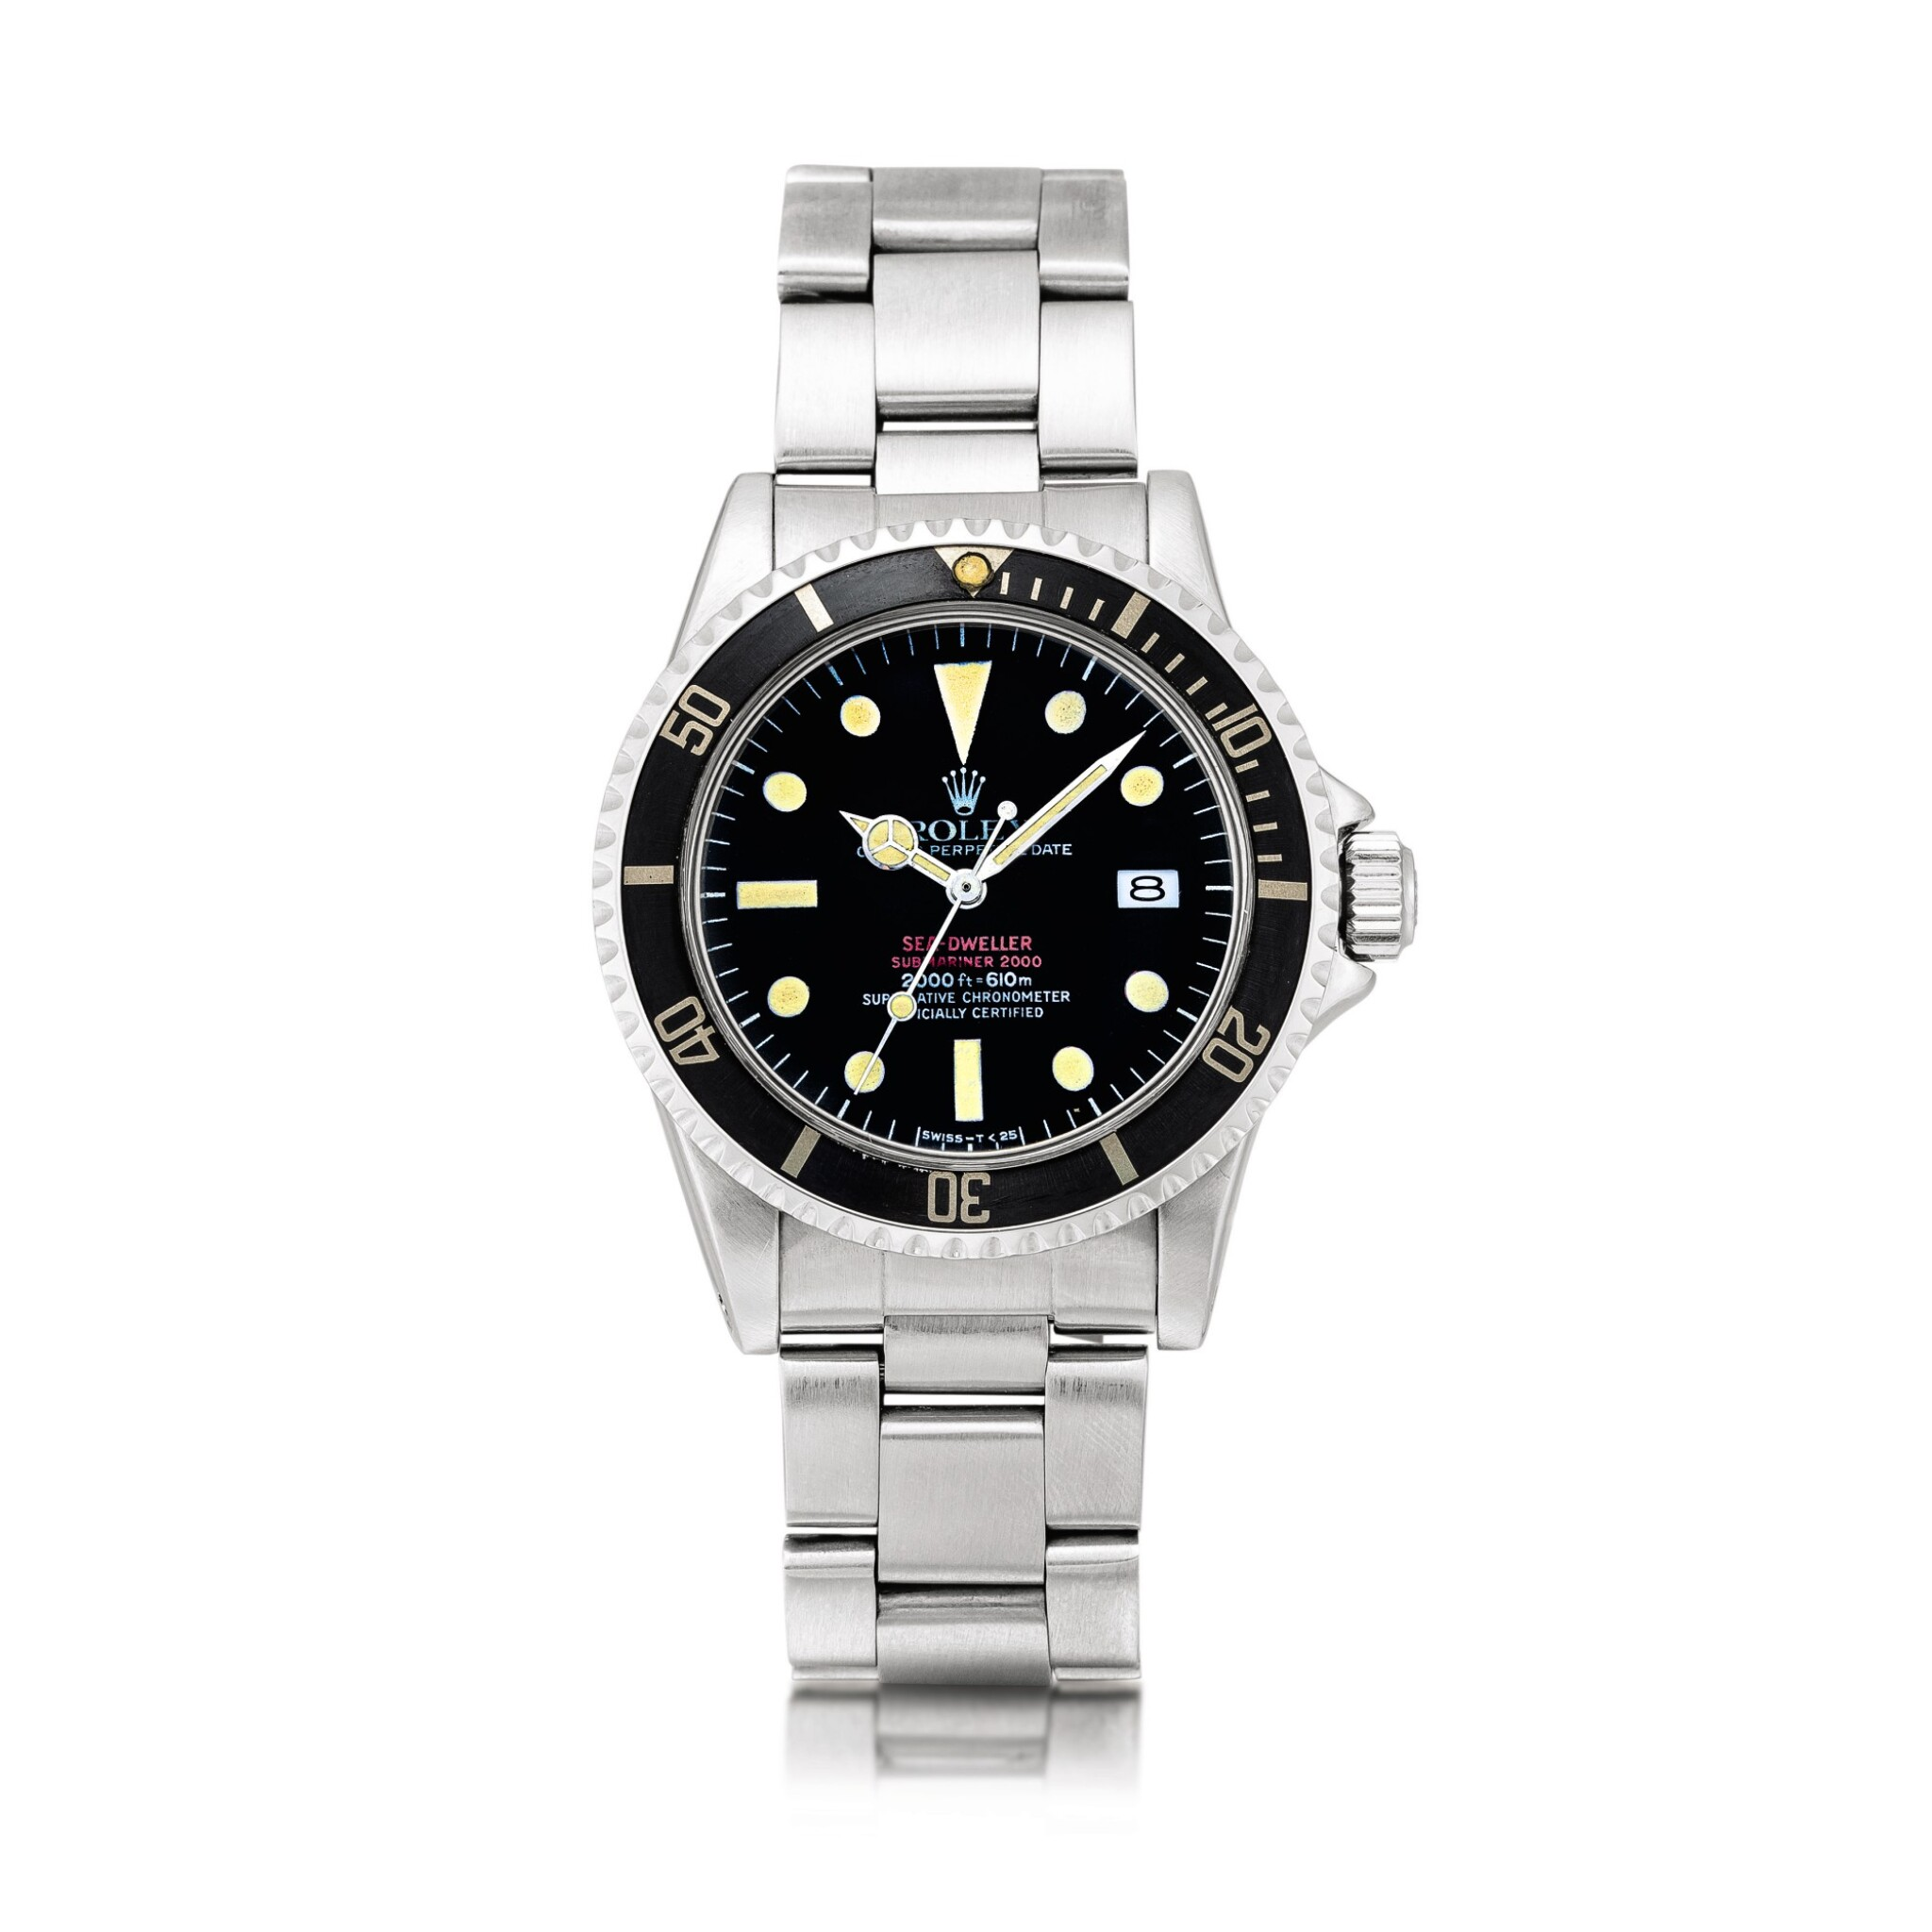 """View full screen - View 1 of Lot 2141. Rolex   """"Double Red"""" Sea-Dweller, Reference 1665, A stainless steel wristwatch with date and bracelet, Circa 1977   勞力士   """"Double Red"""" Sea-Dweller型號1665  精鋼鏈帶腕錶,備日期顯示,約1977年製."""